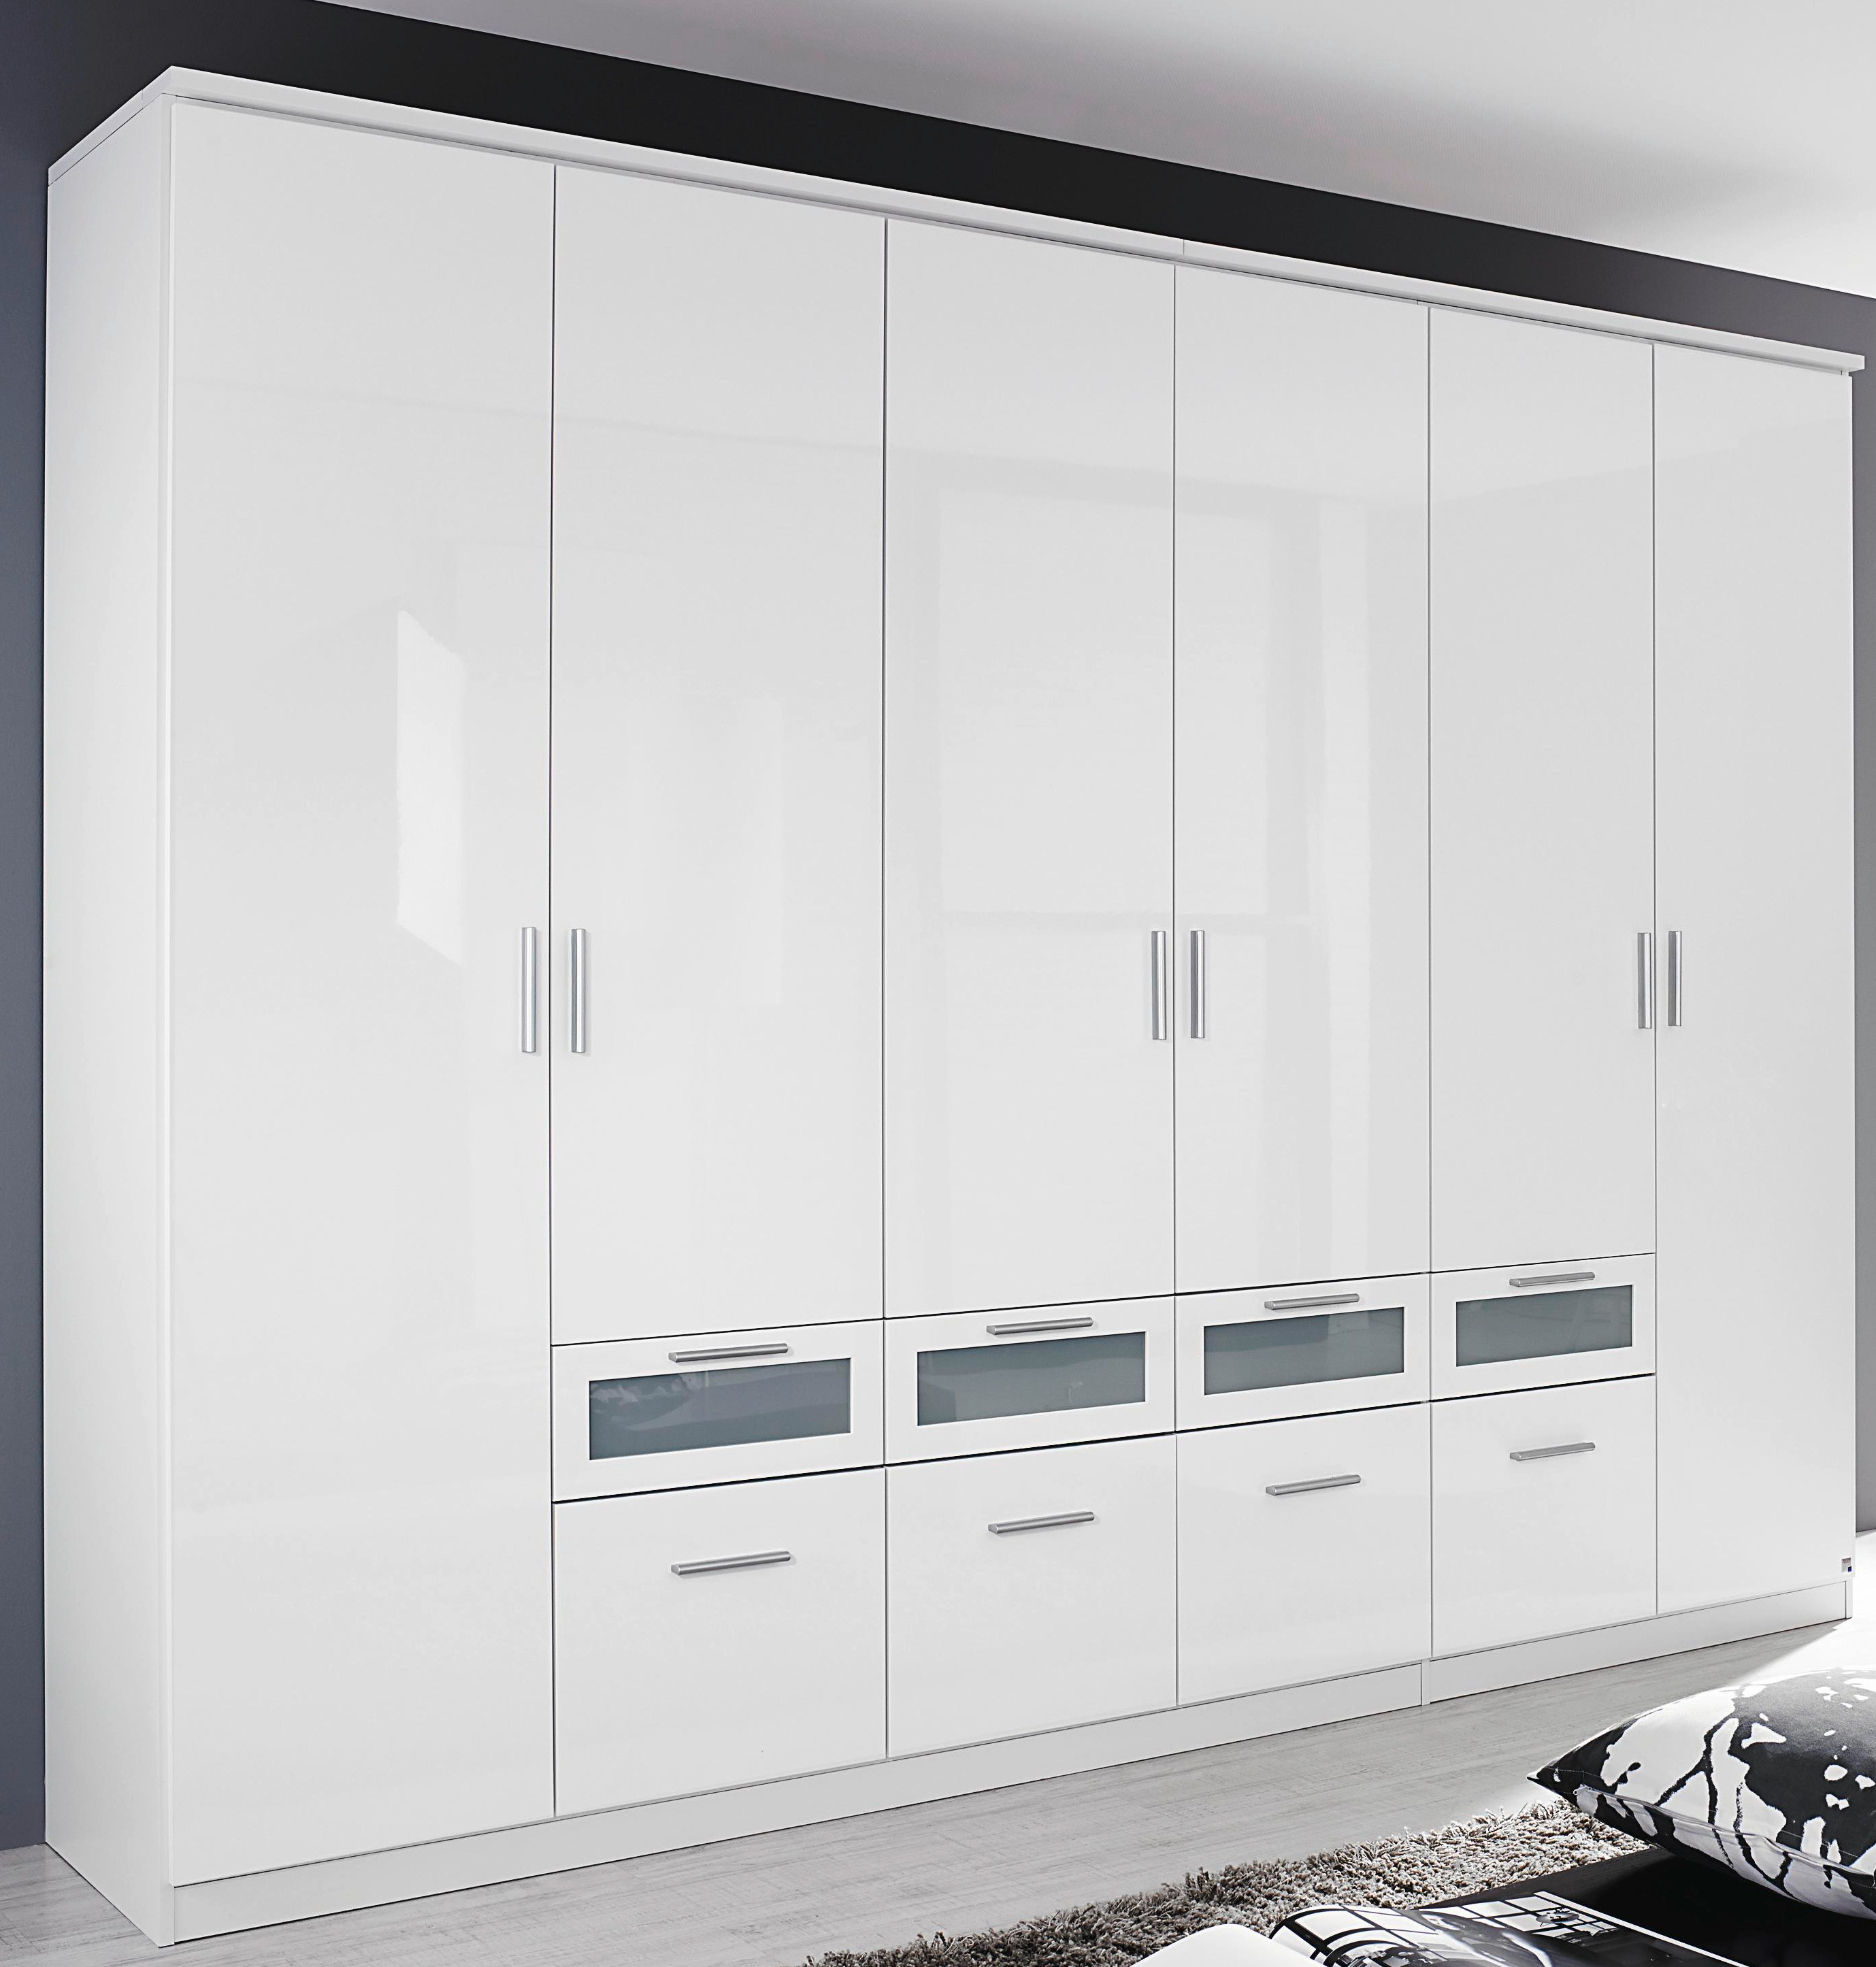 rauch dreht renschrank mit schubk sten garmisch plus hochglanz wei 3 breiten ebay. Black Bedroom Furniture Sets. Home Design Ideas